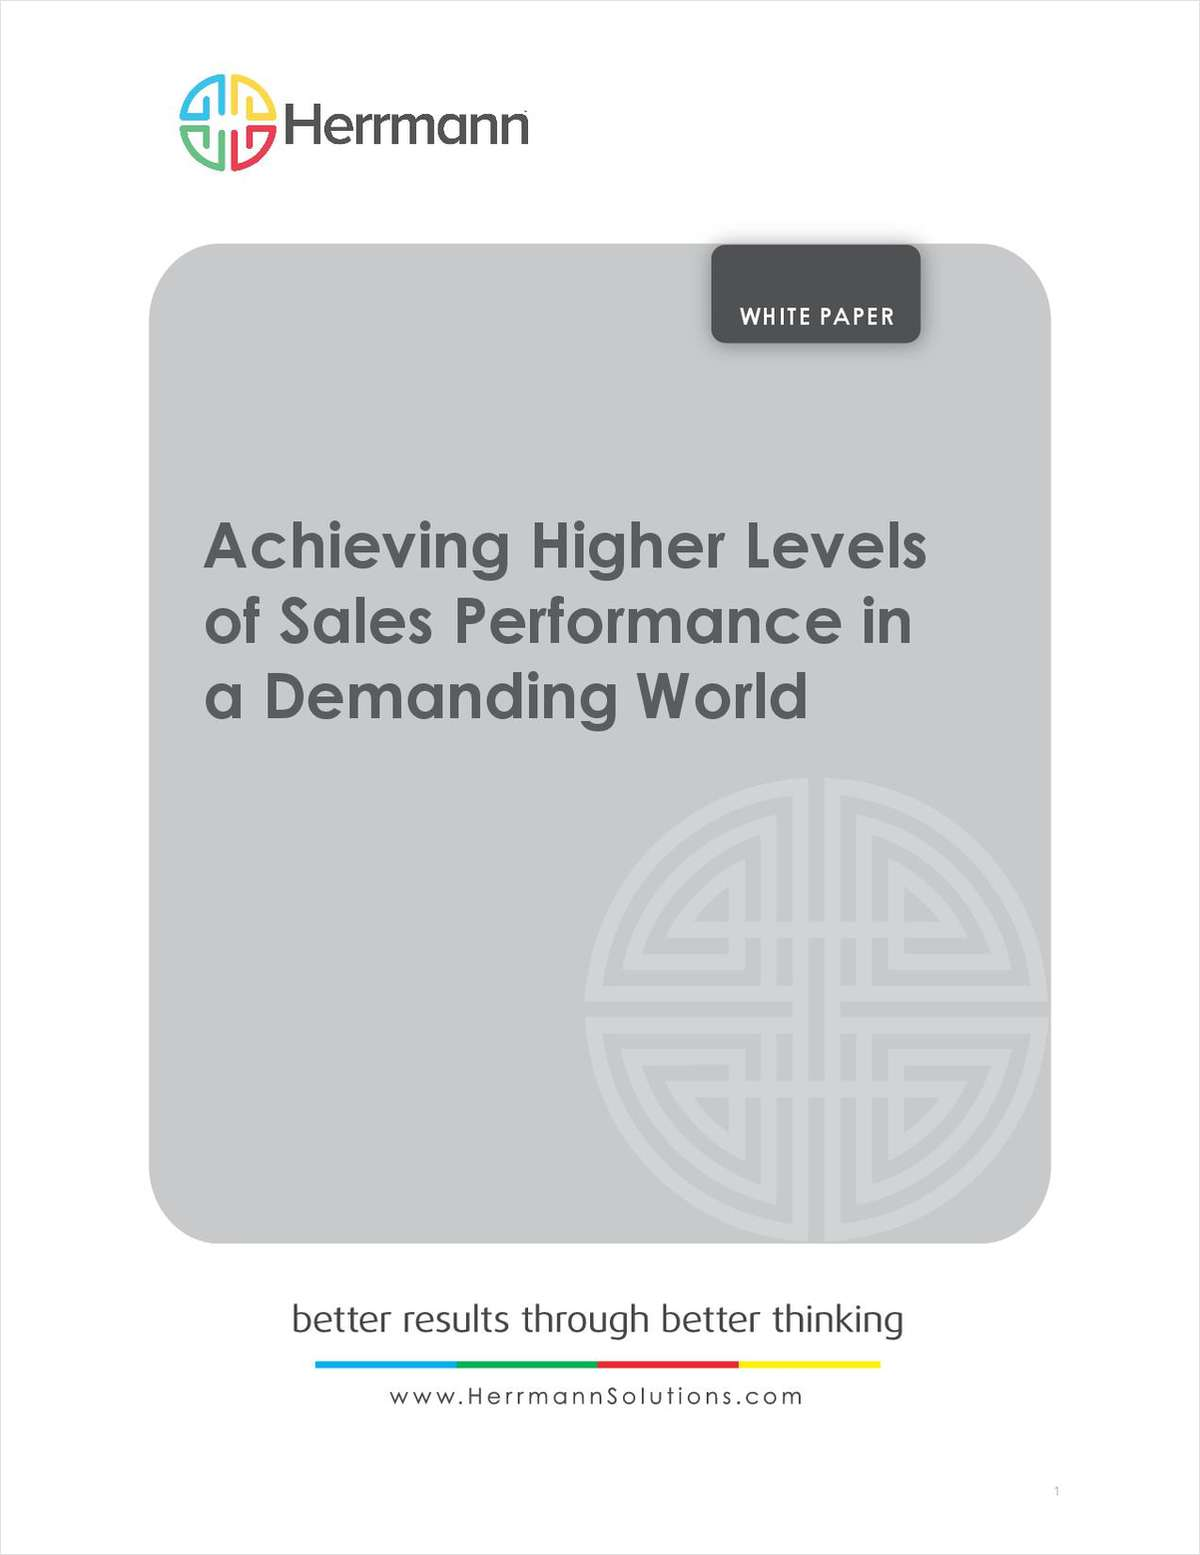 Achieving Higher Levels of Sales Performance in a Demanding World